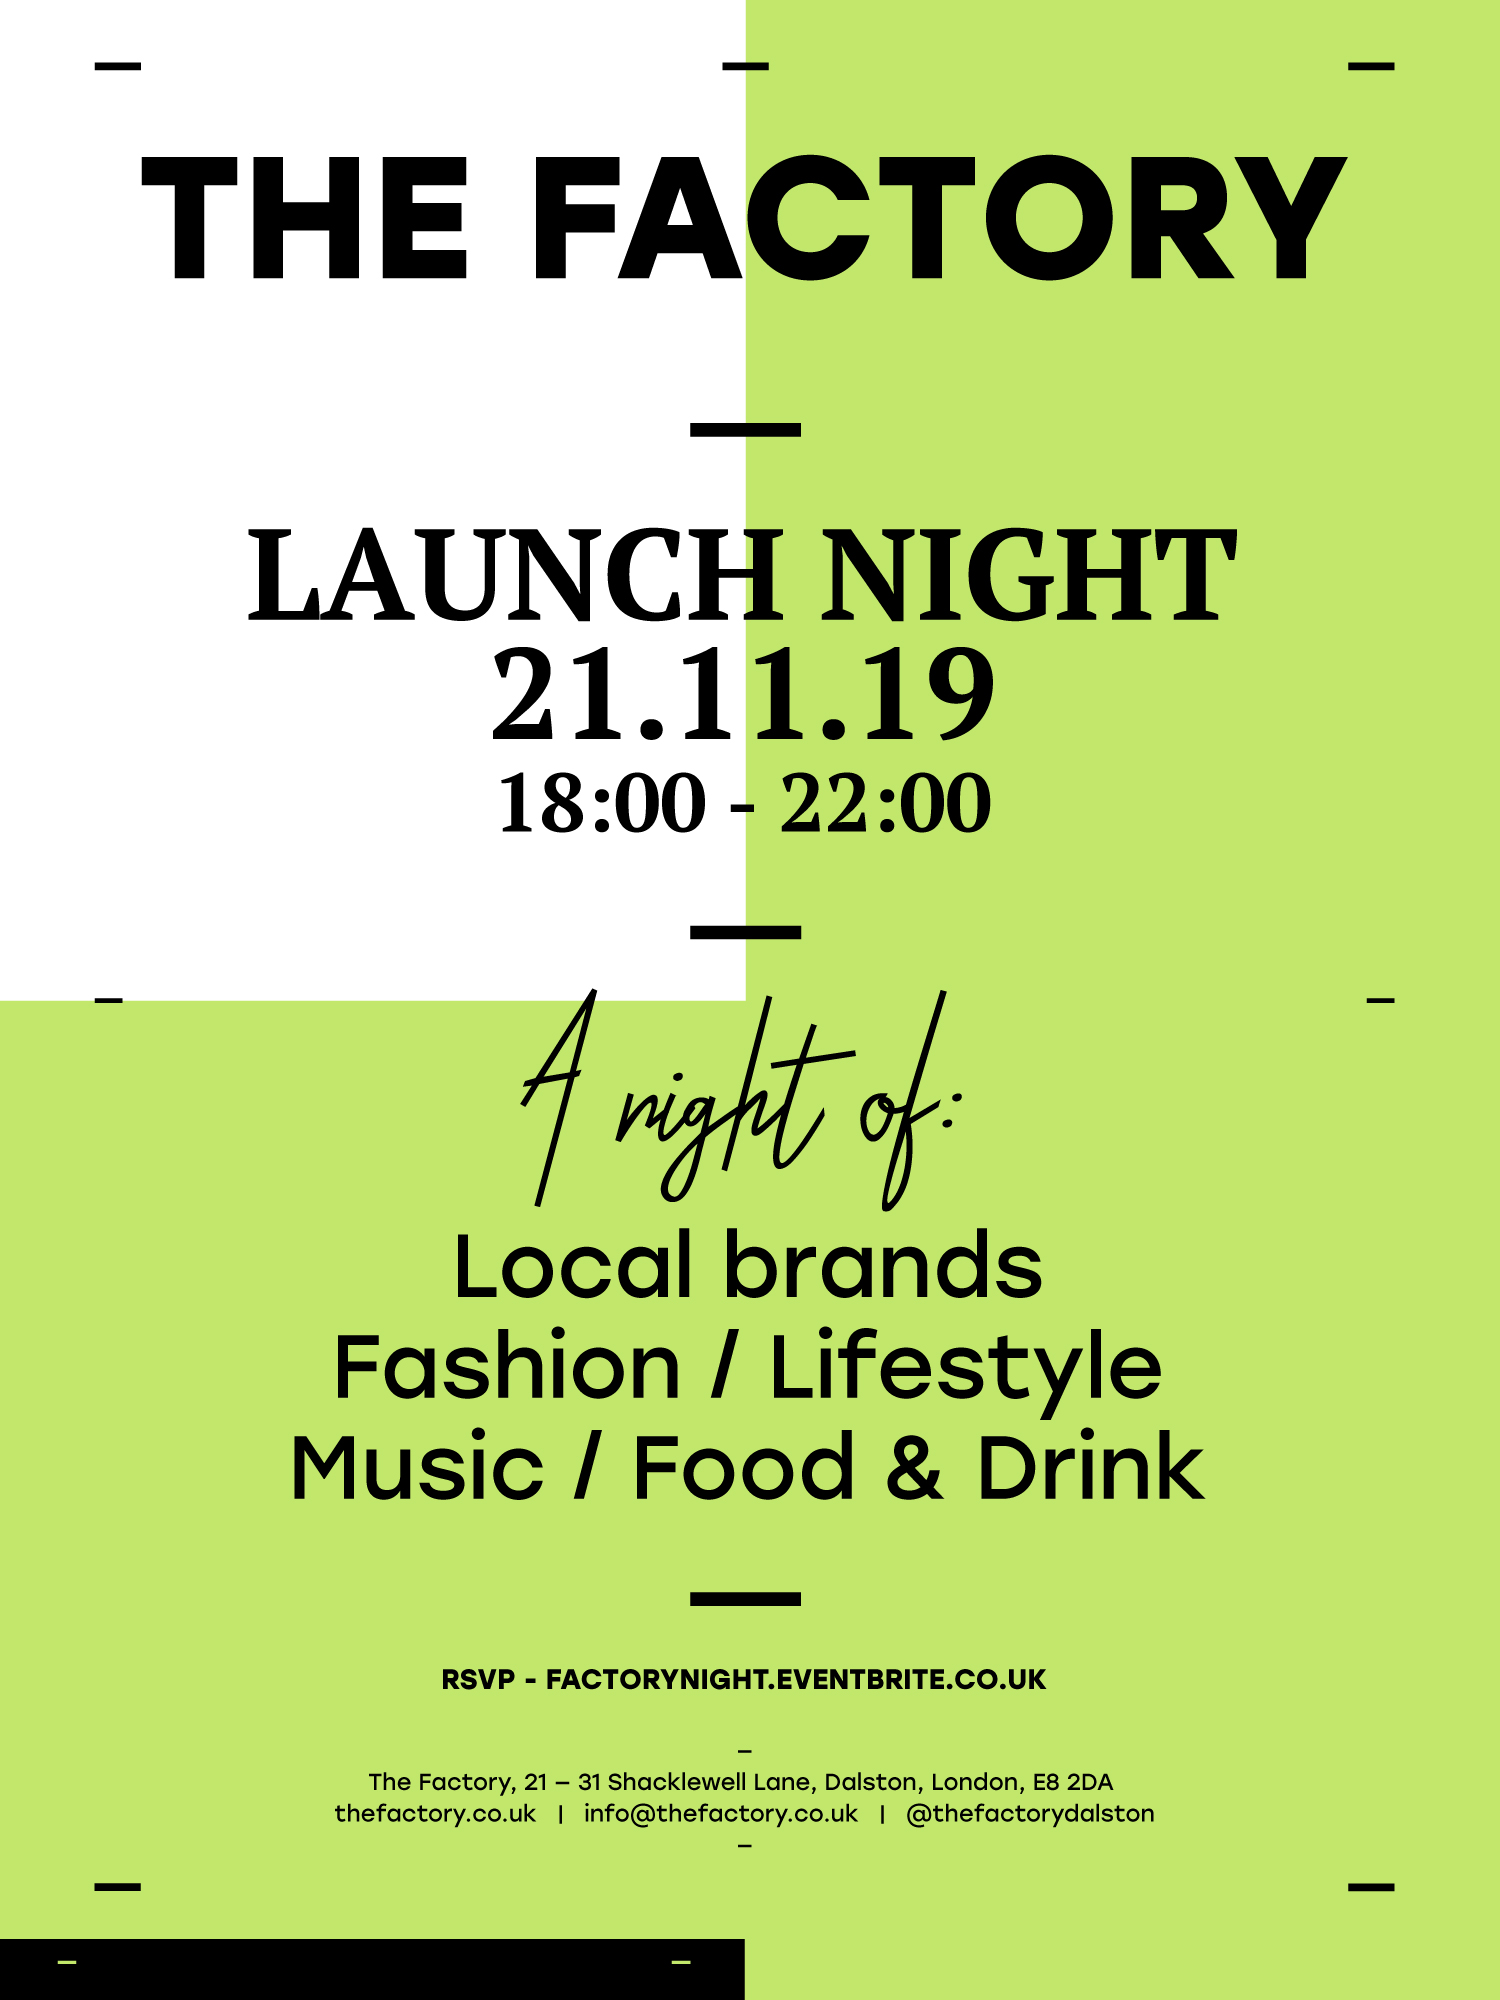 The_Factory_Launch_Night_Event_21.11.19